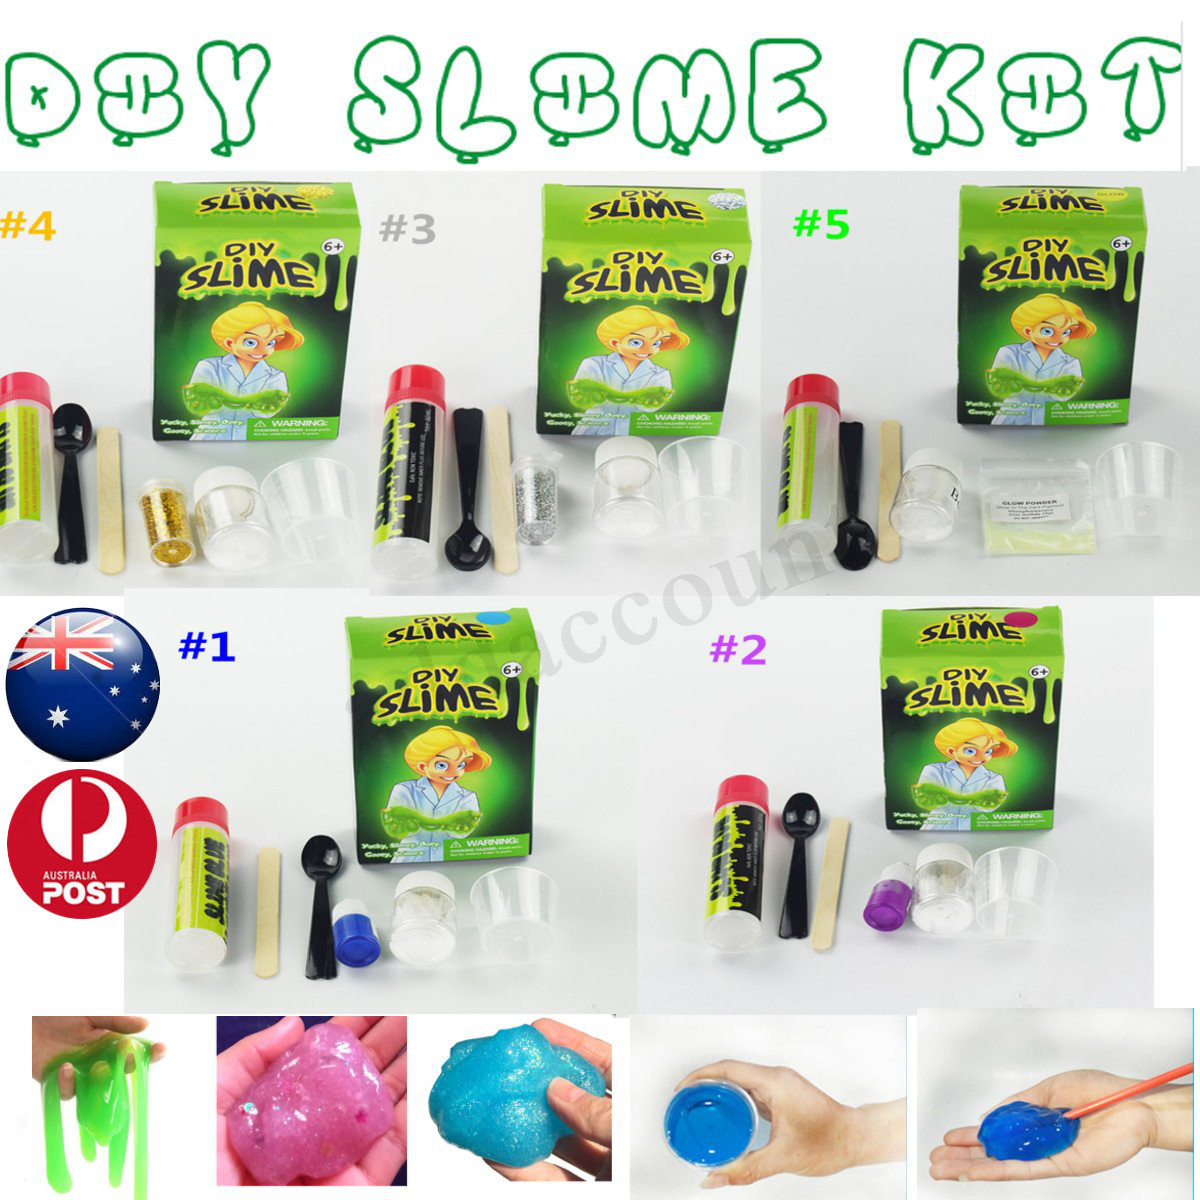 Best ideas about DIY Slime Kit . Save or Pin Set of 5 MAKE YOUR OWN DIY SLIME KIT SCIENCE GLOW DARK Now.